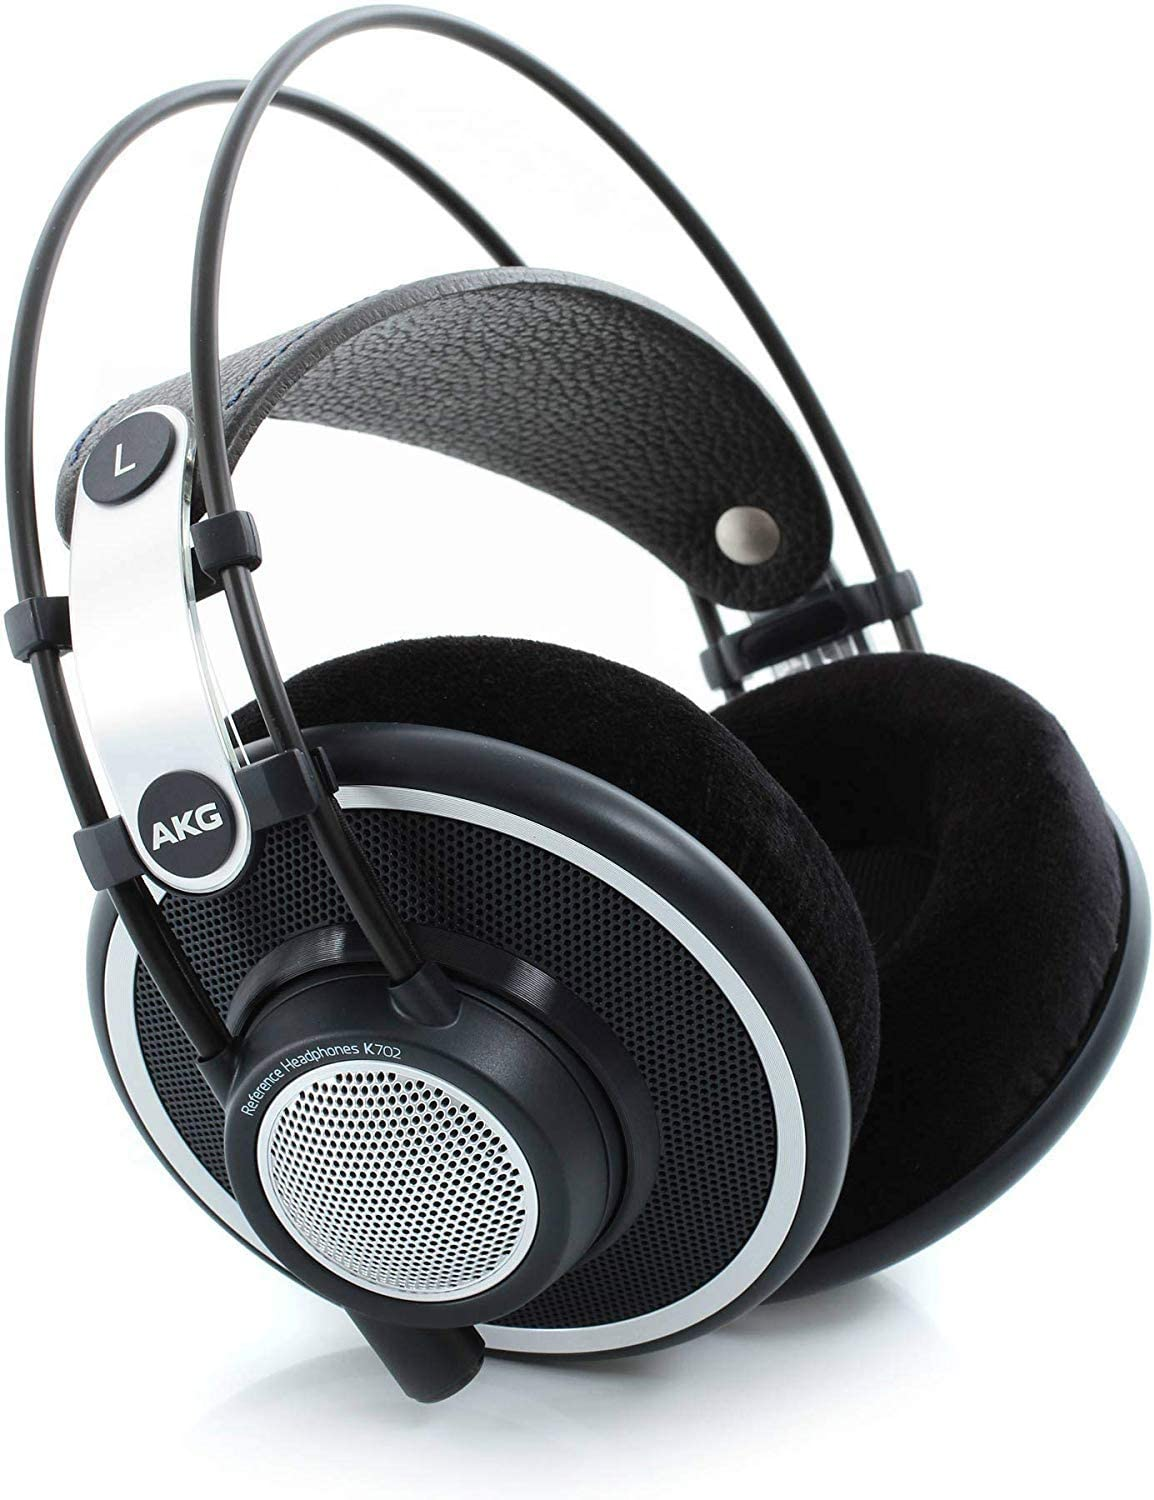 8 Best Headphones For Mixing And Mastering | Ultimate List 7